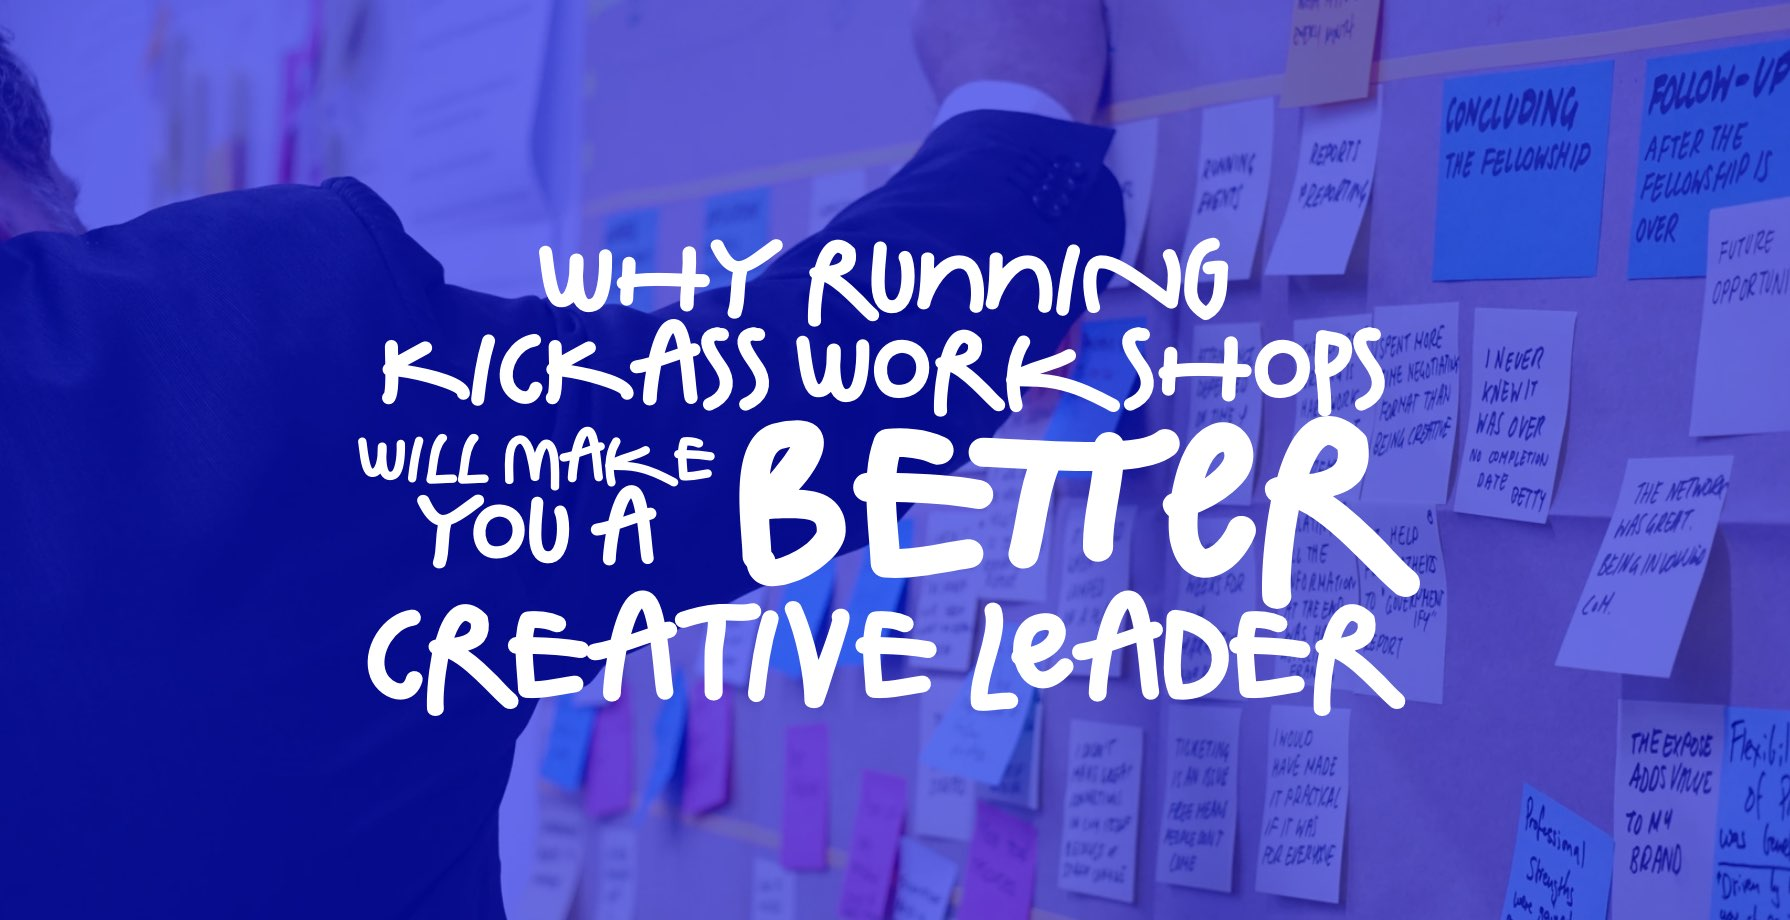 Why Running Kickass Workshops Will Make You a Better Creative Leader 1